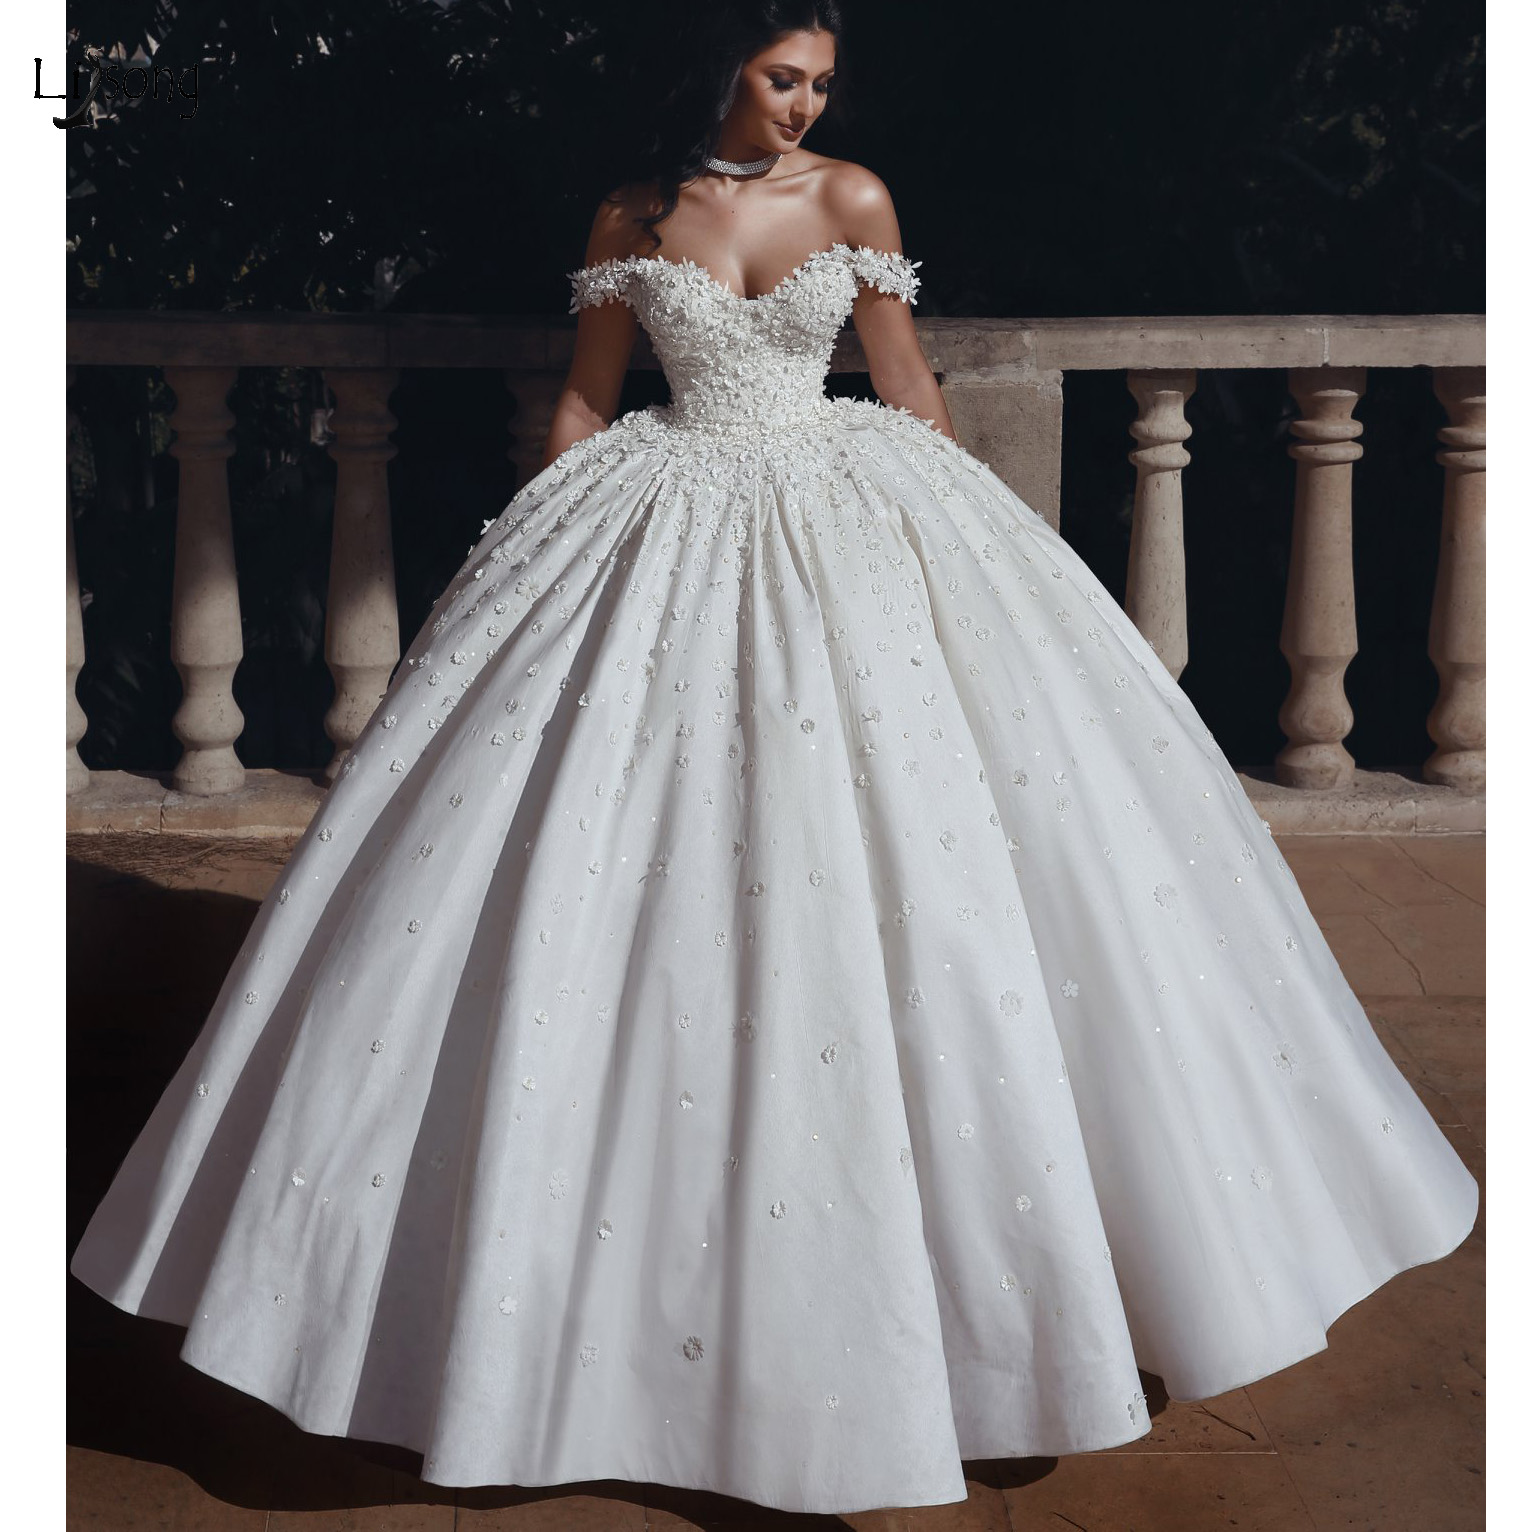 Princess 3D Flower Puffy Wedding Dresses Lace Pearls Beaded Ball Gowns Lace Bridal Gowns Plus Size Bridal Dress